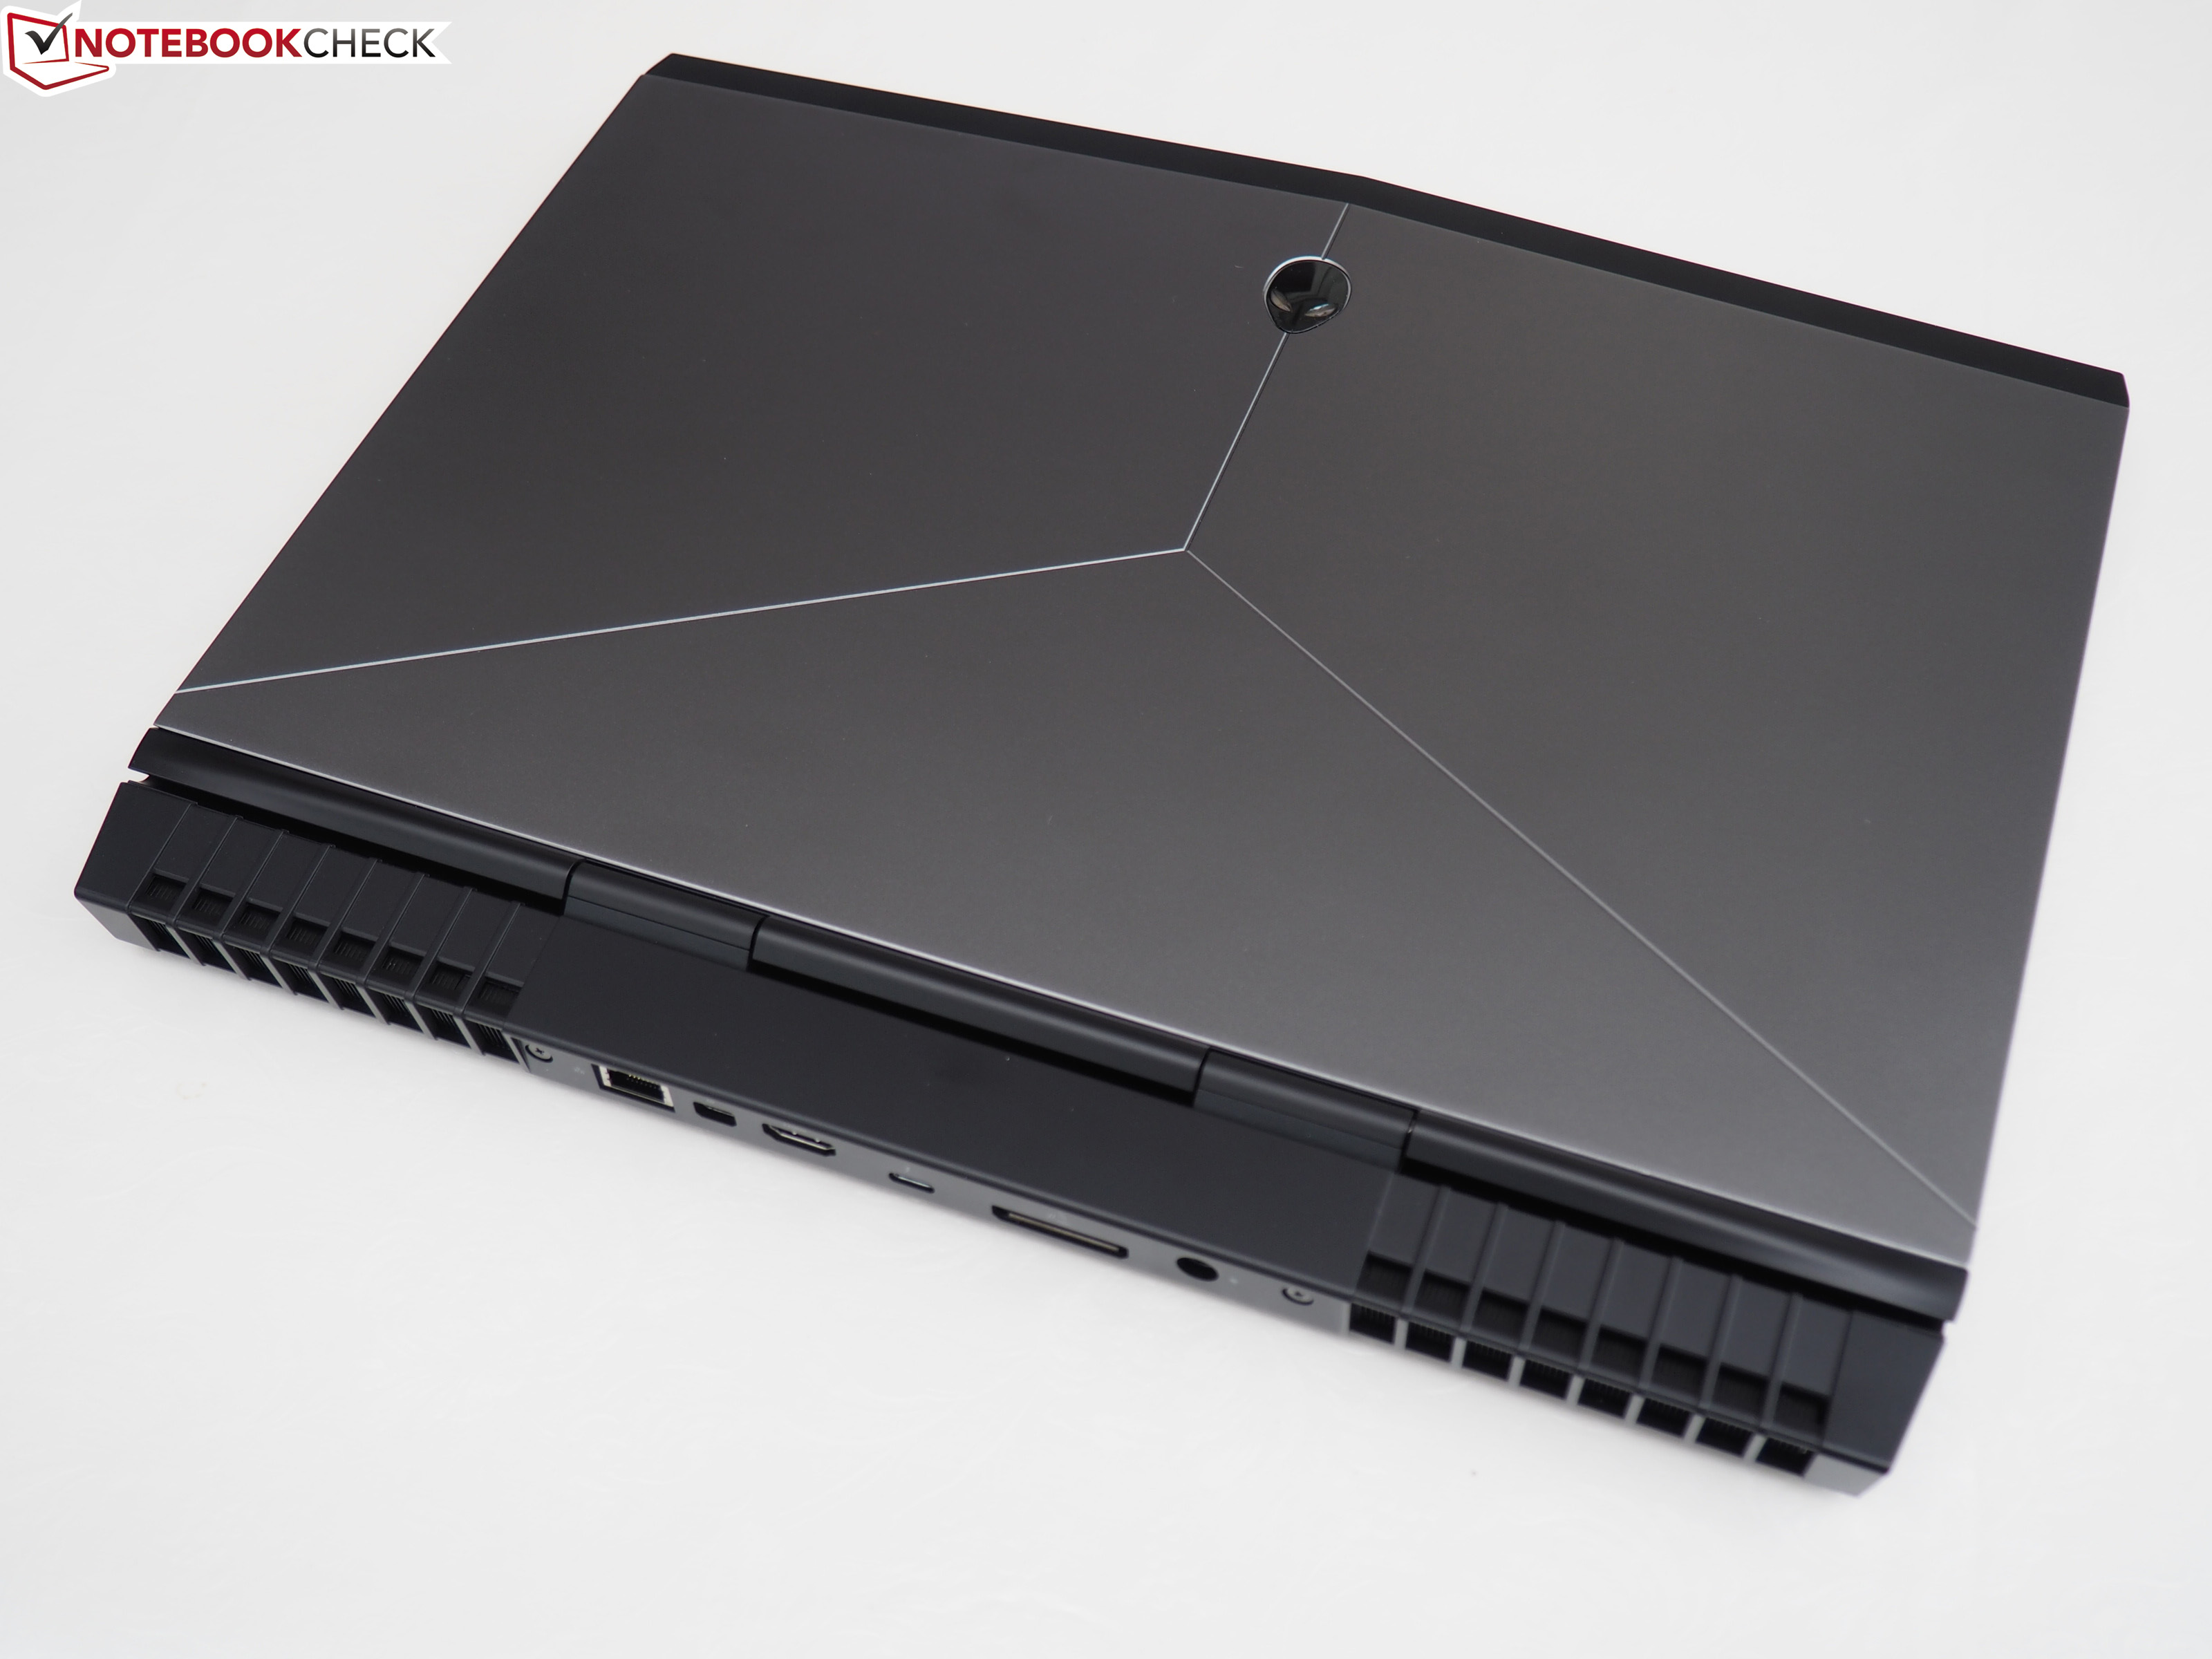 Alienware 15 R3 Notebook Review - NotebookCheck net Reviews